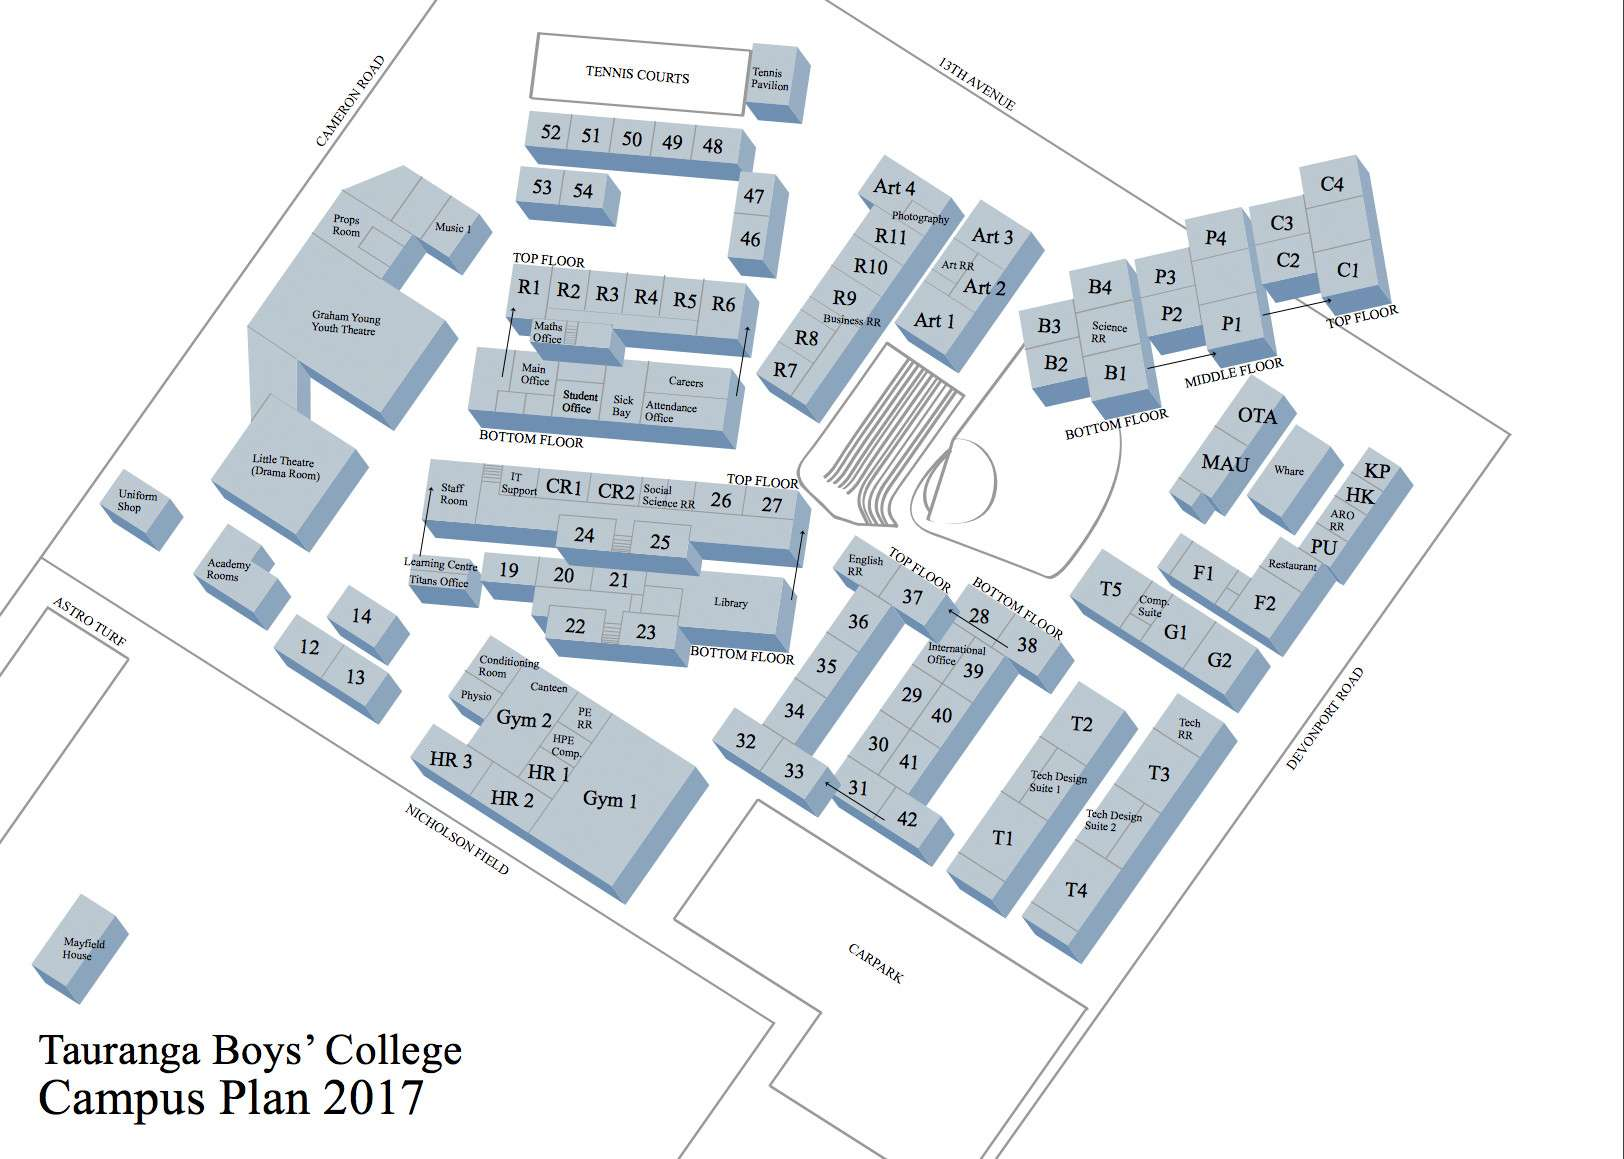 School Map - Our Facilities - About Us  -  Tauranga Boys' College